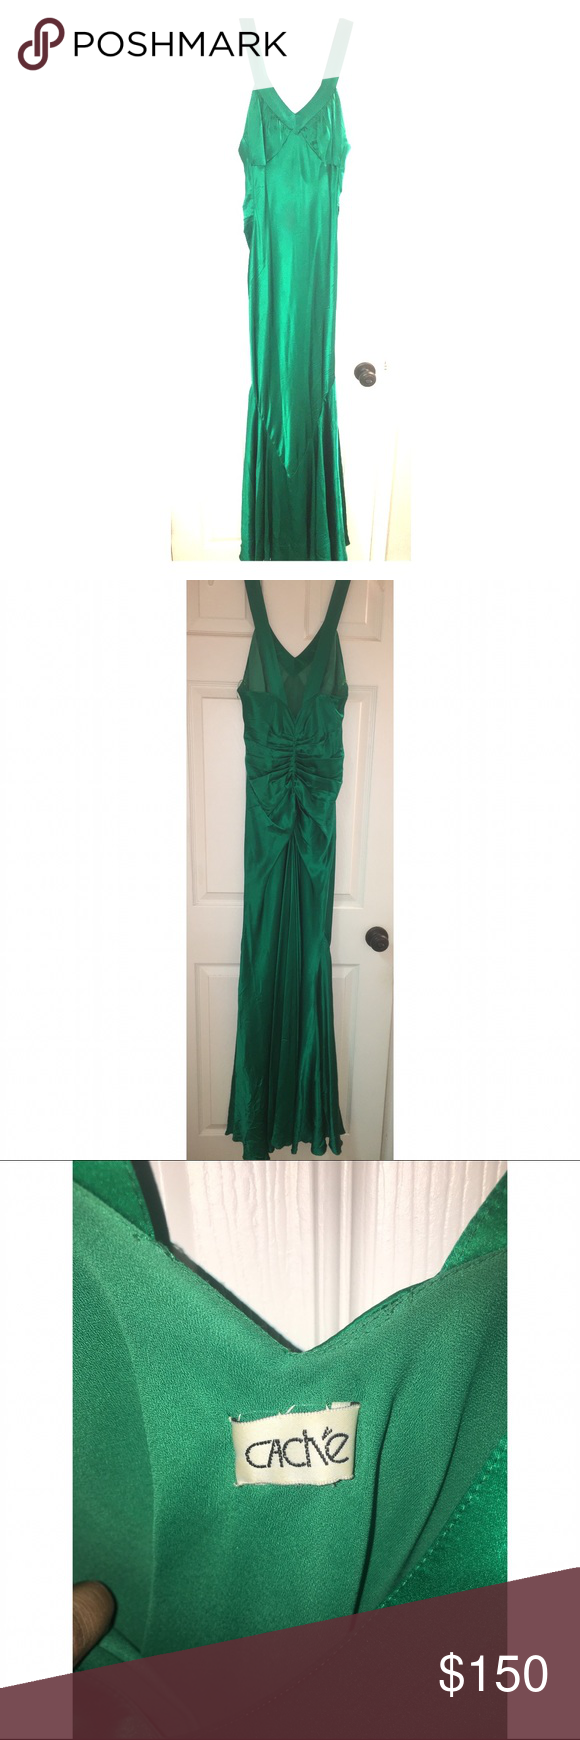 Cache Evening Gown   My Posh Picks   Pinterest   Gowns, Emeralds and ...